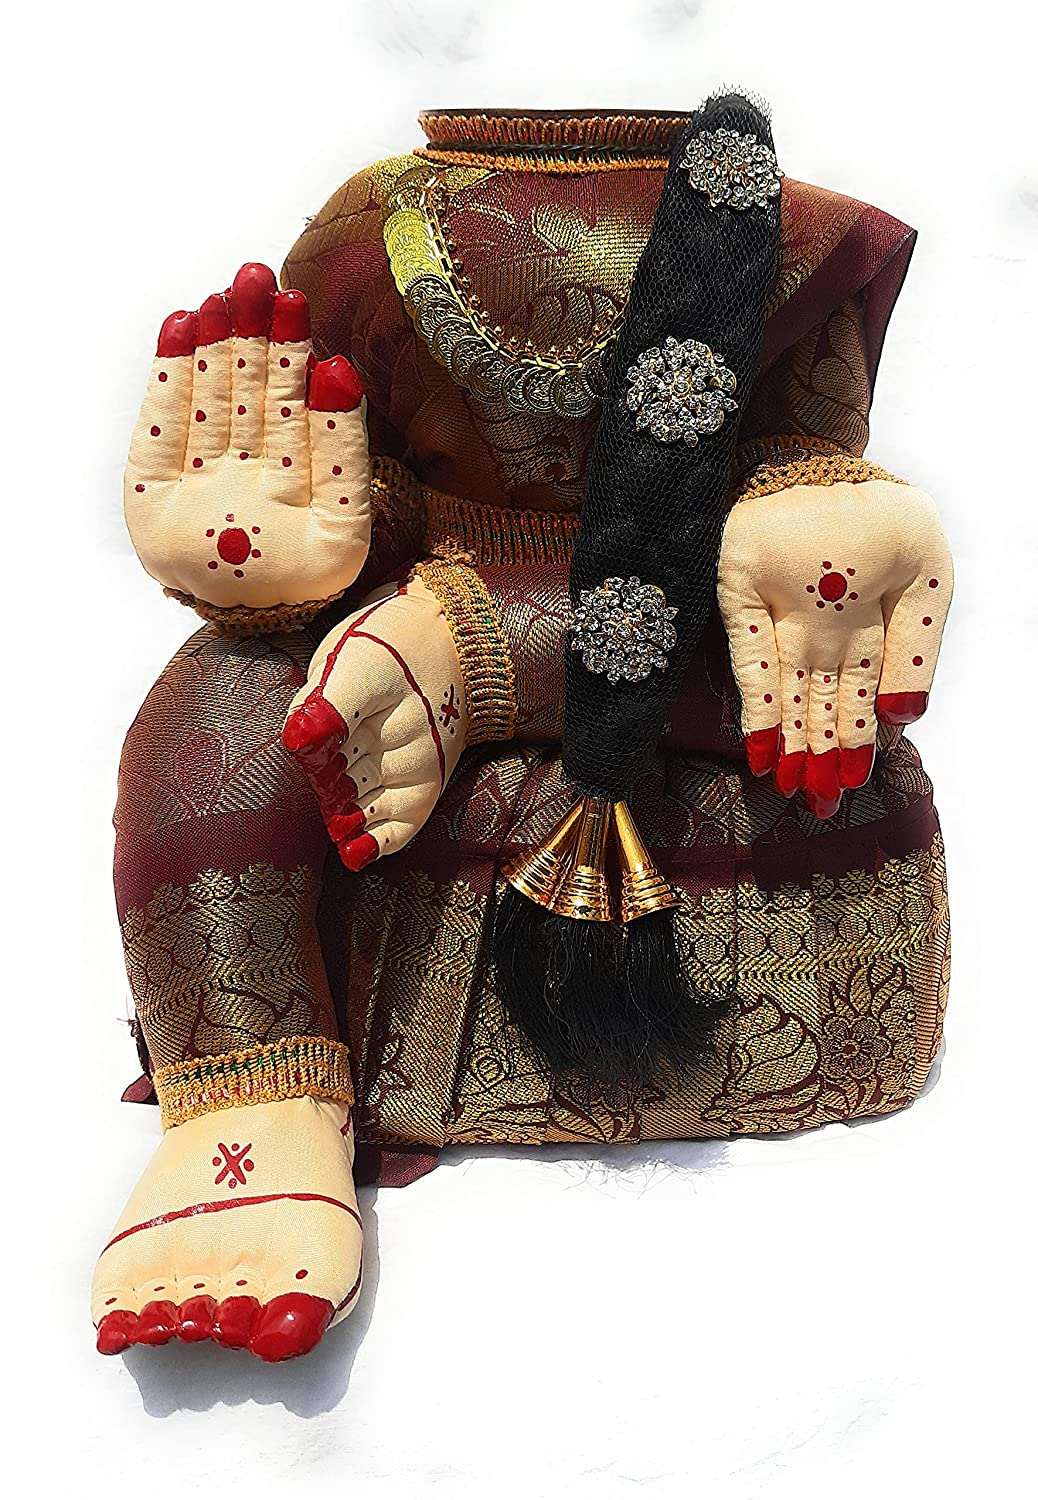 Divine Goddess Varalakshmi Nombu/Viradham/Pooja Decorative Doll With Jadai And Chain | Inner Copper Coated Kalasa | Height: 12 Inches | Pack Of 1 Doll | Colour May Vary (Multicolor)